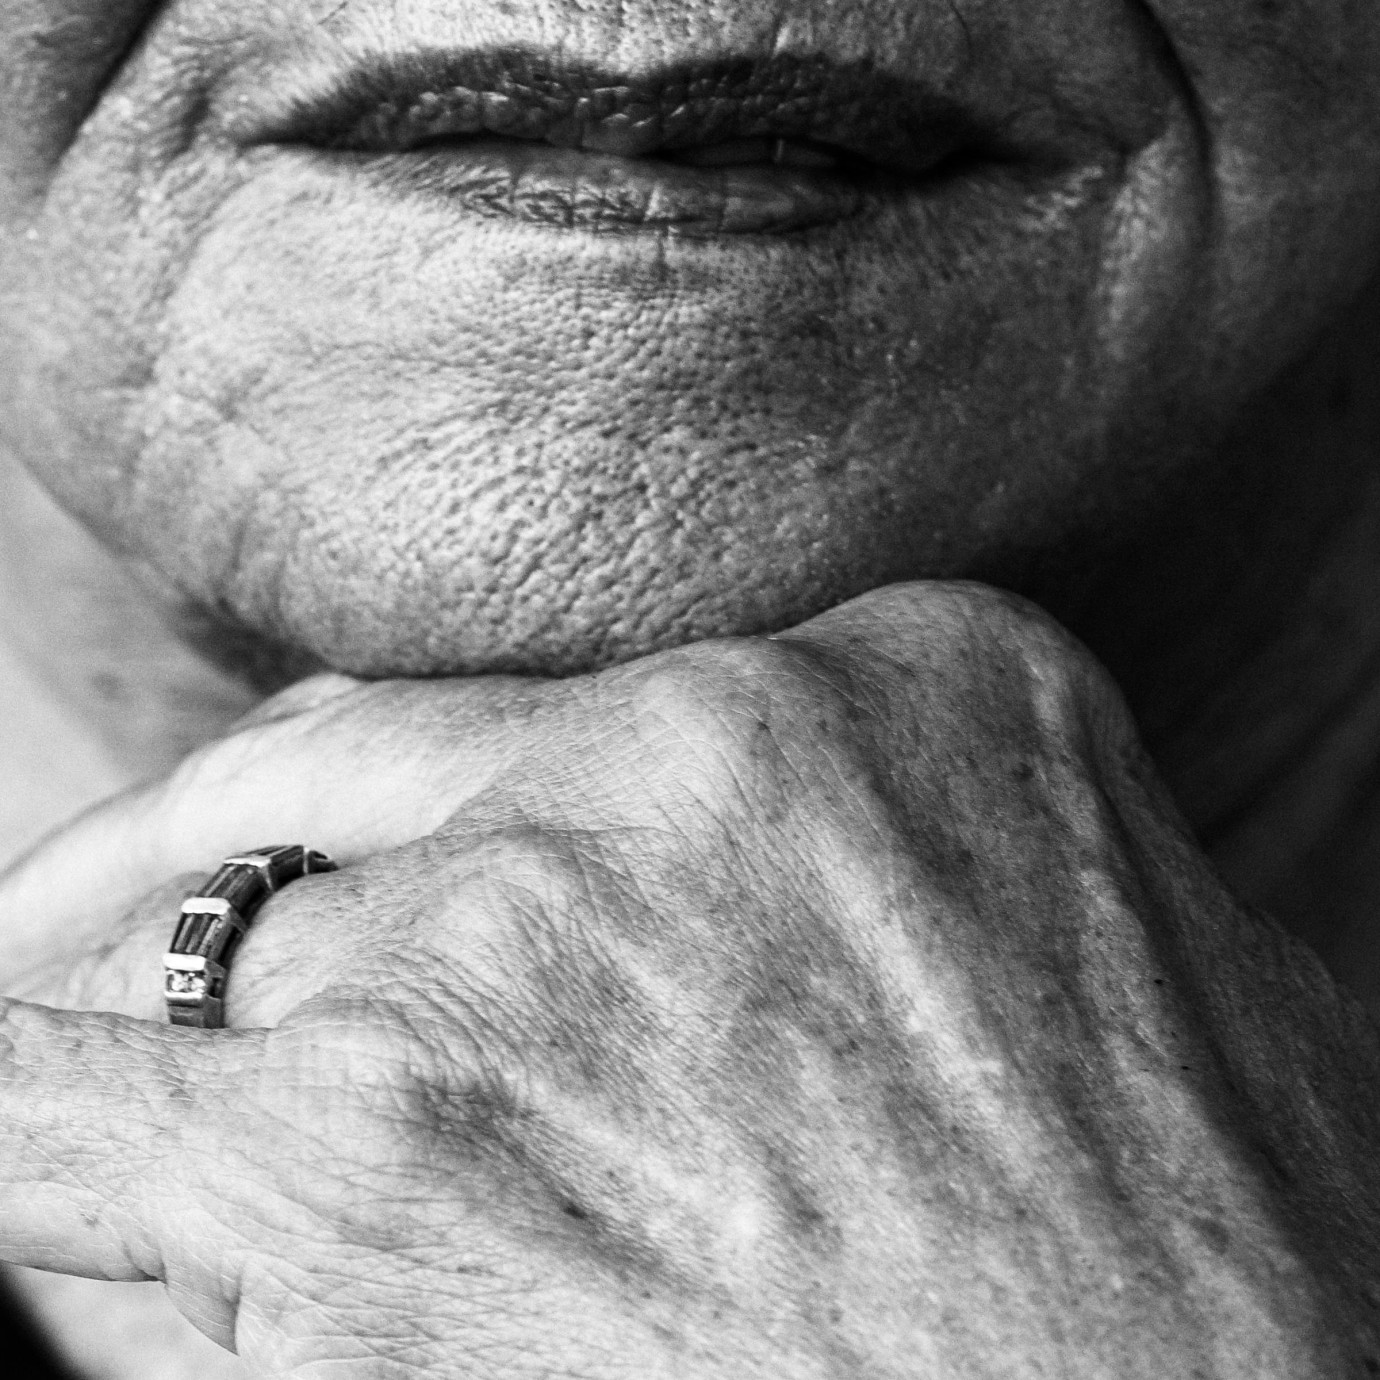 Close up detail of hand on chin in black and white.